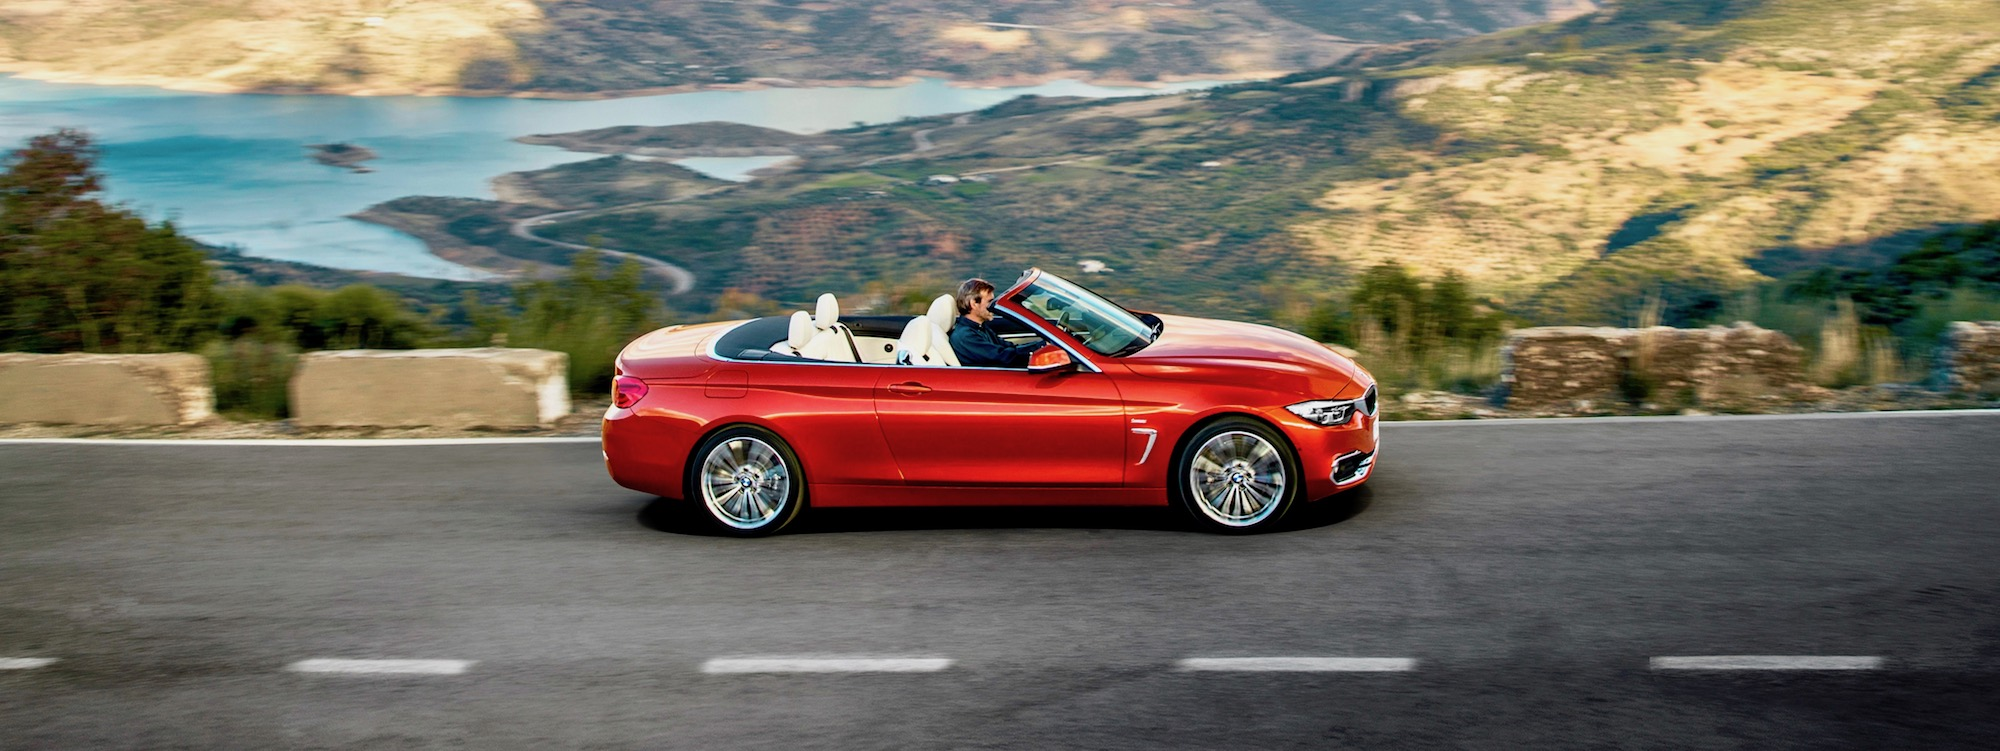 8 Of The Best BMW Convertible Lease Deals For October 2018